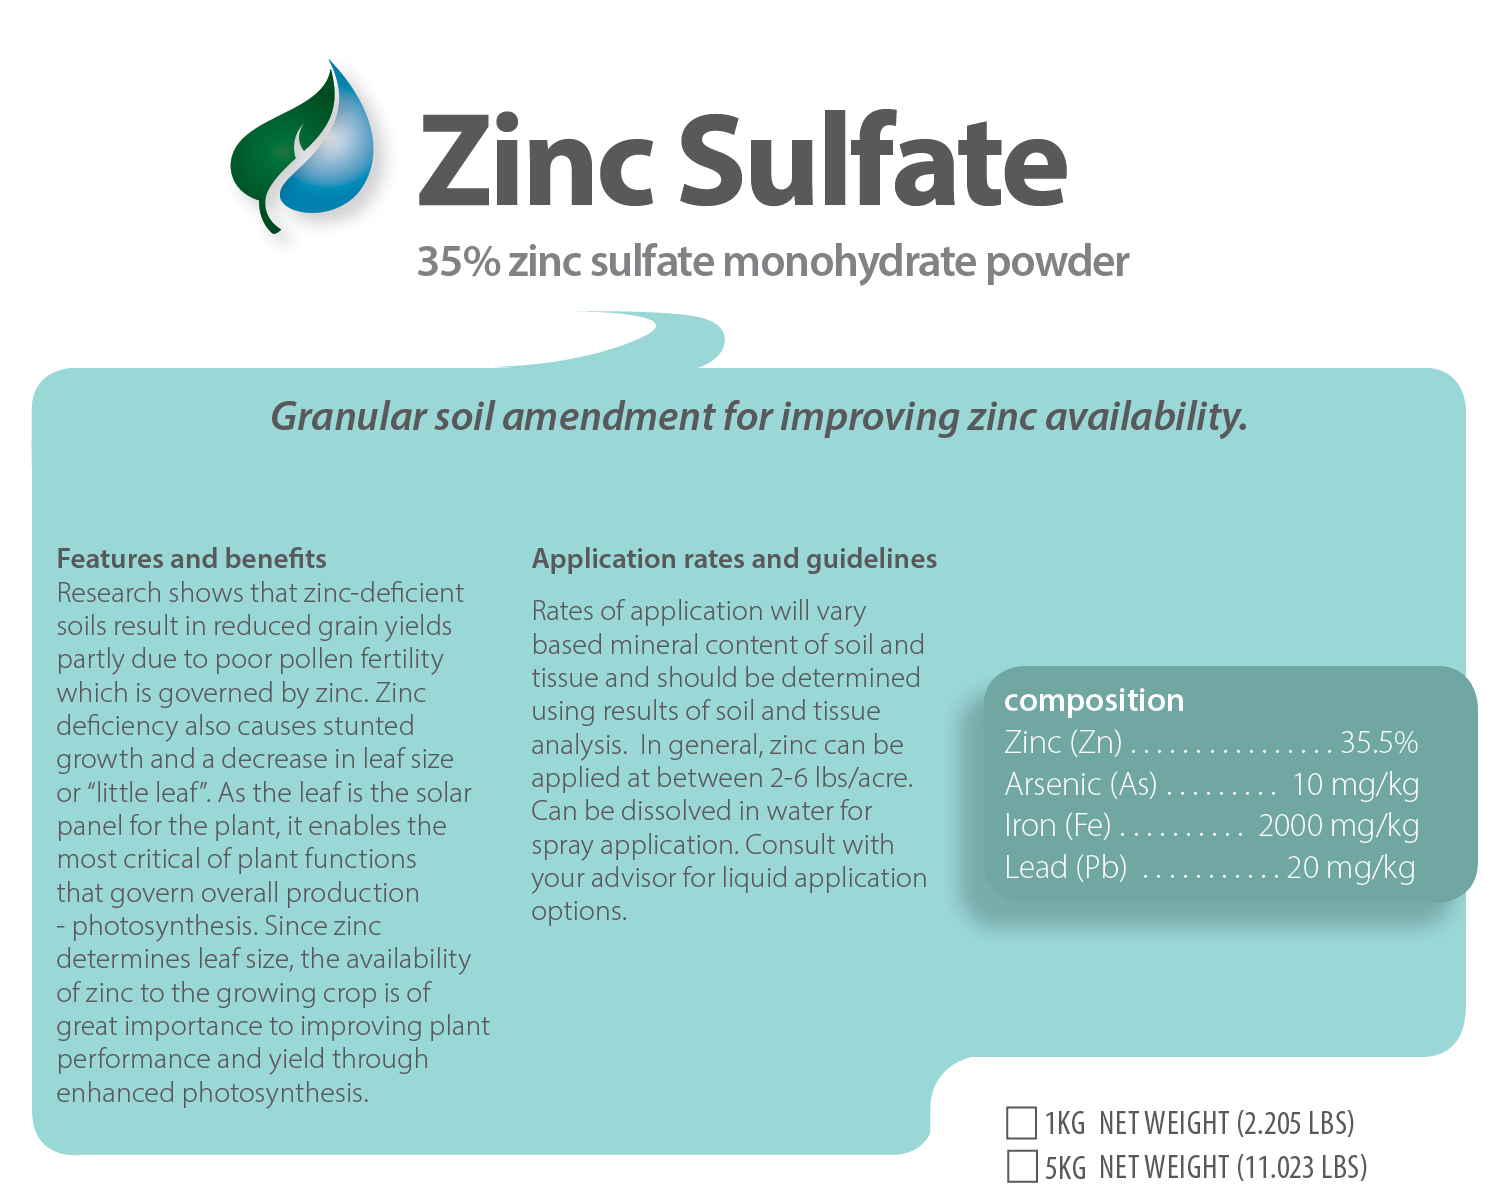 Zinc Sulfate product label